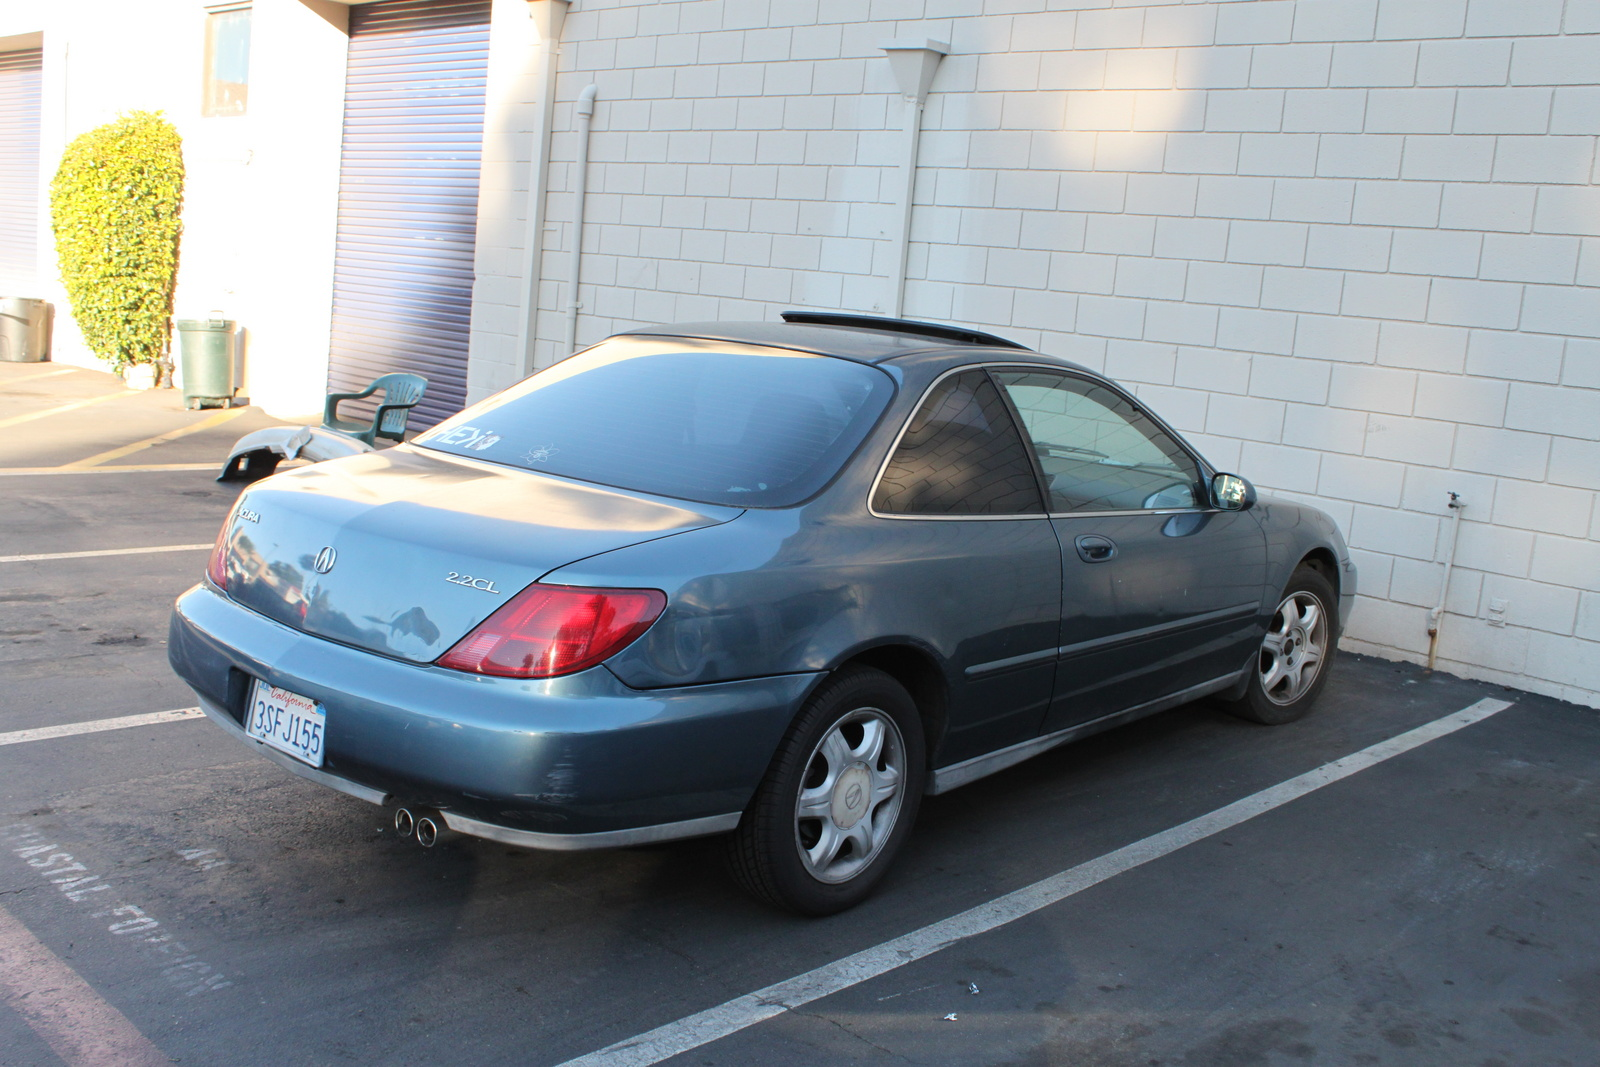 Picture of 1997 Acura CL 2 Dr 2.2 Coupe